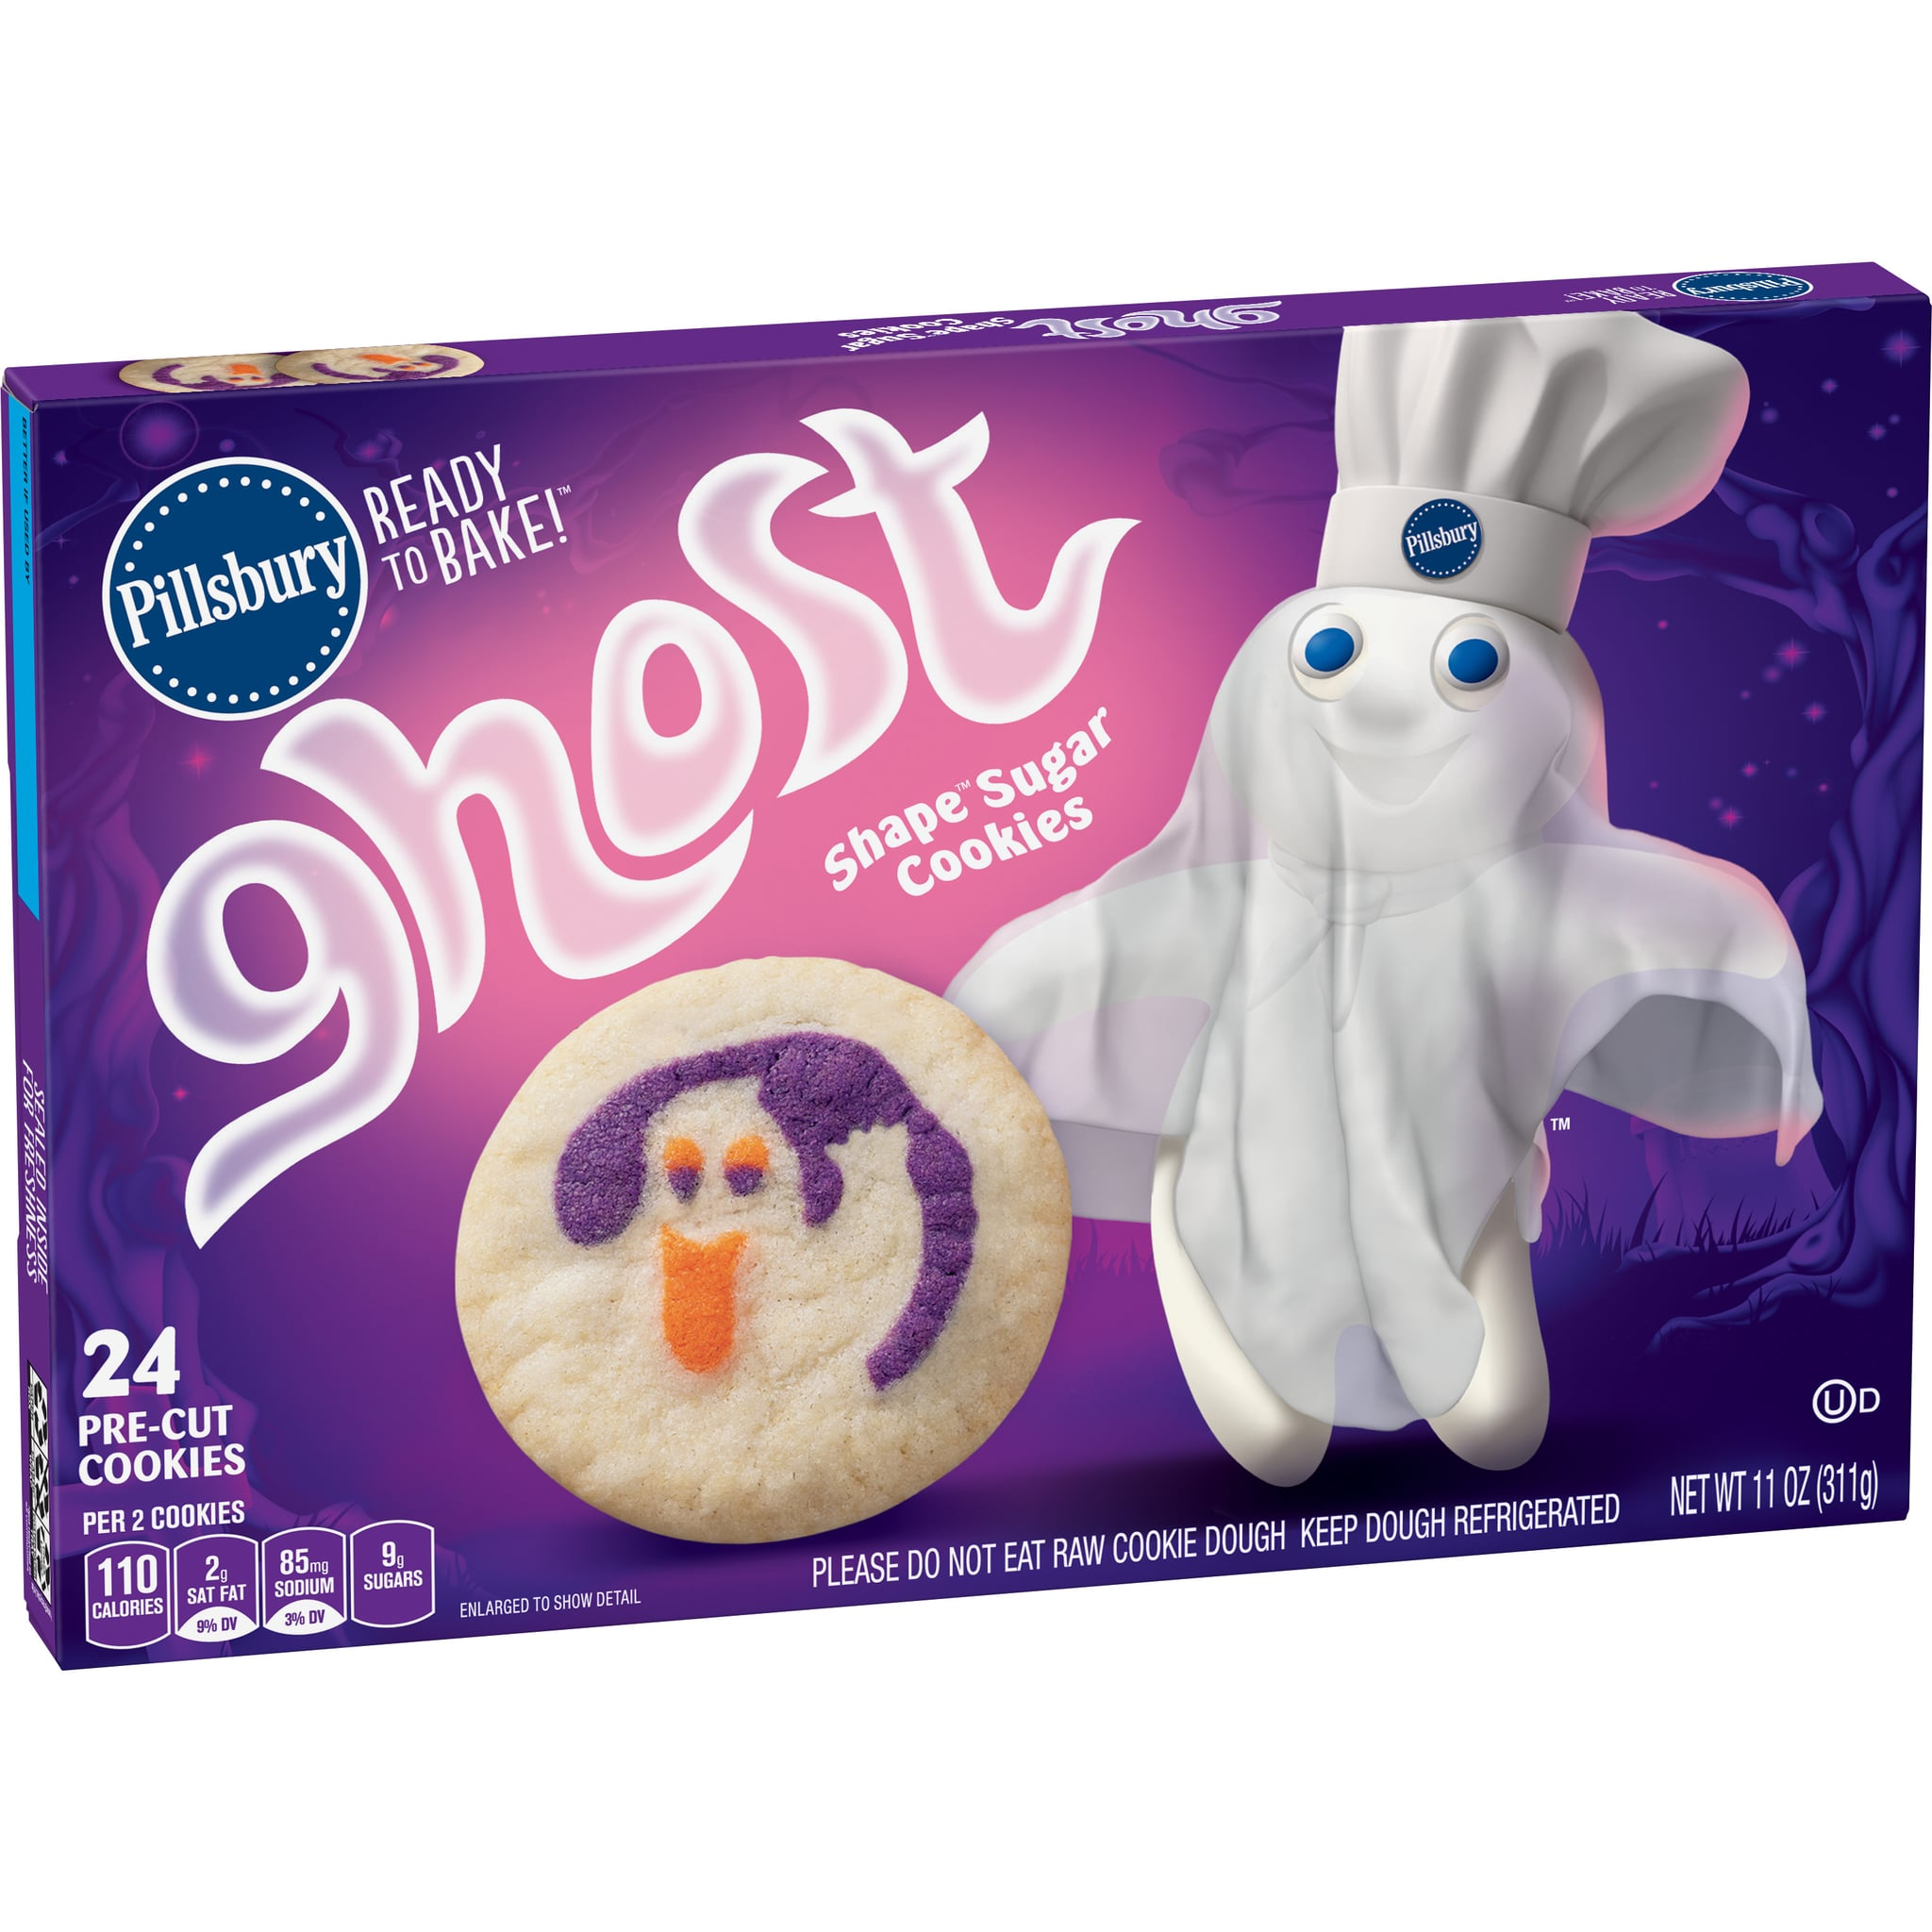 Pillsbury Is Bringing Back Its Adorable Ready-Bake Ghost Sugar Cookies For Halloween!